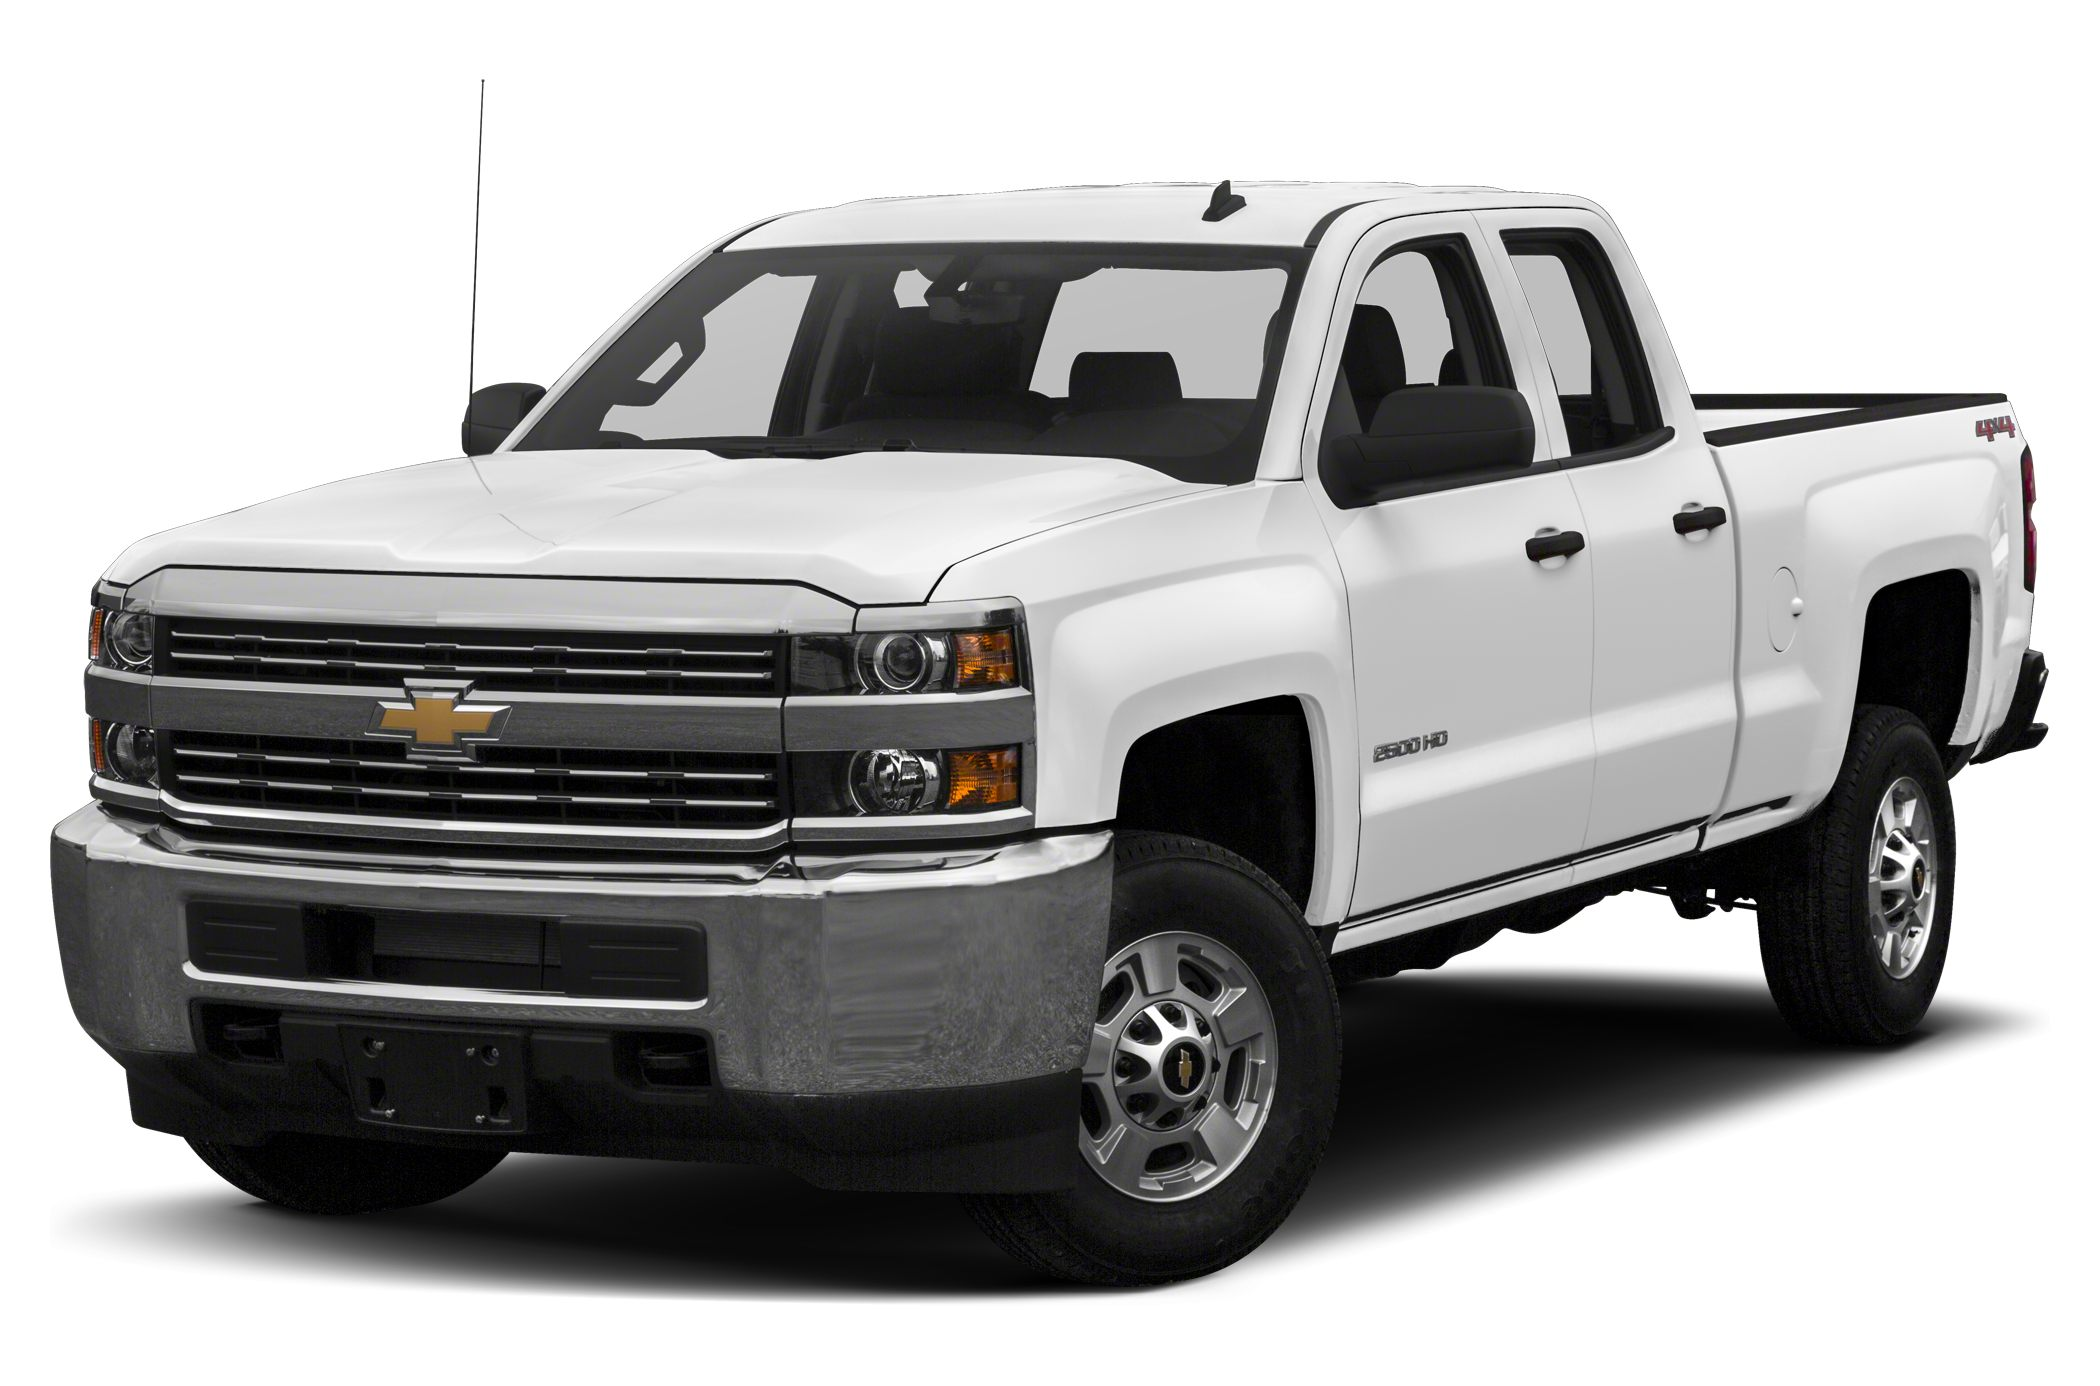 2015 Chevrolet Silverado 2500 LTZ Crew Cab Pickup for sale in Daphne for $60,600 with 5 miles